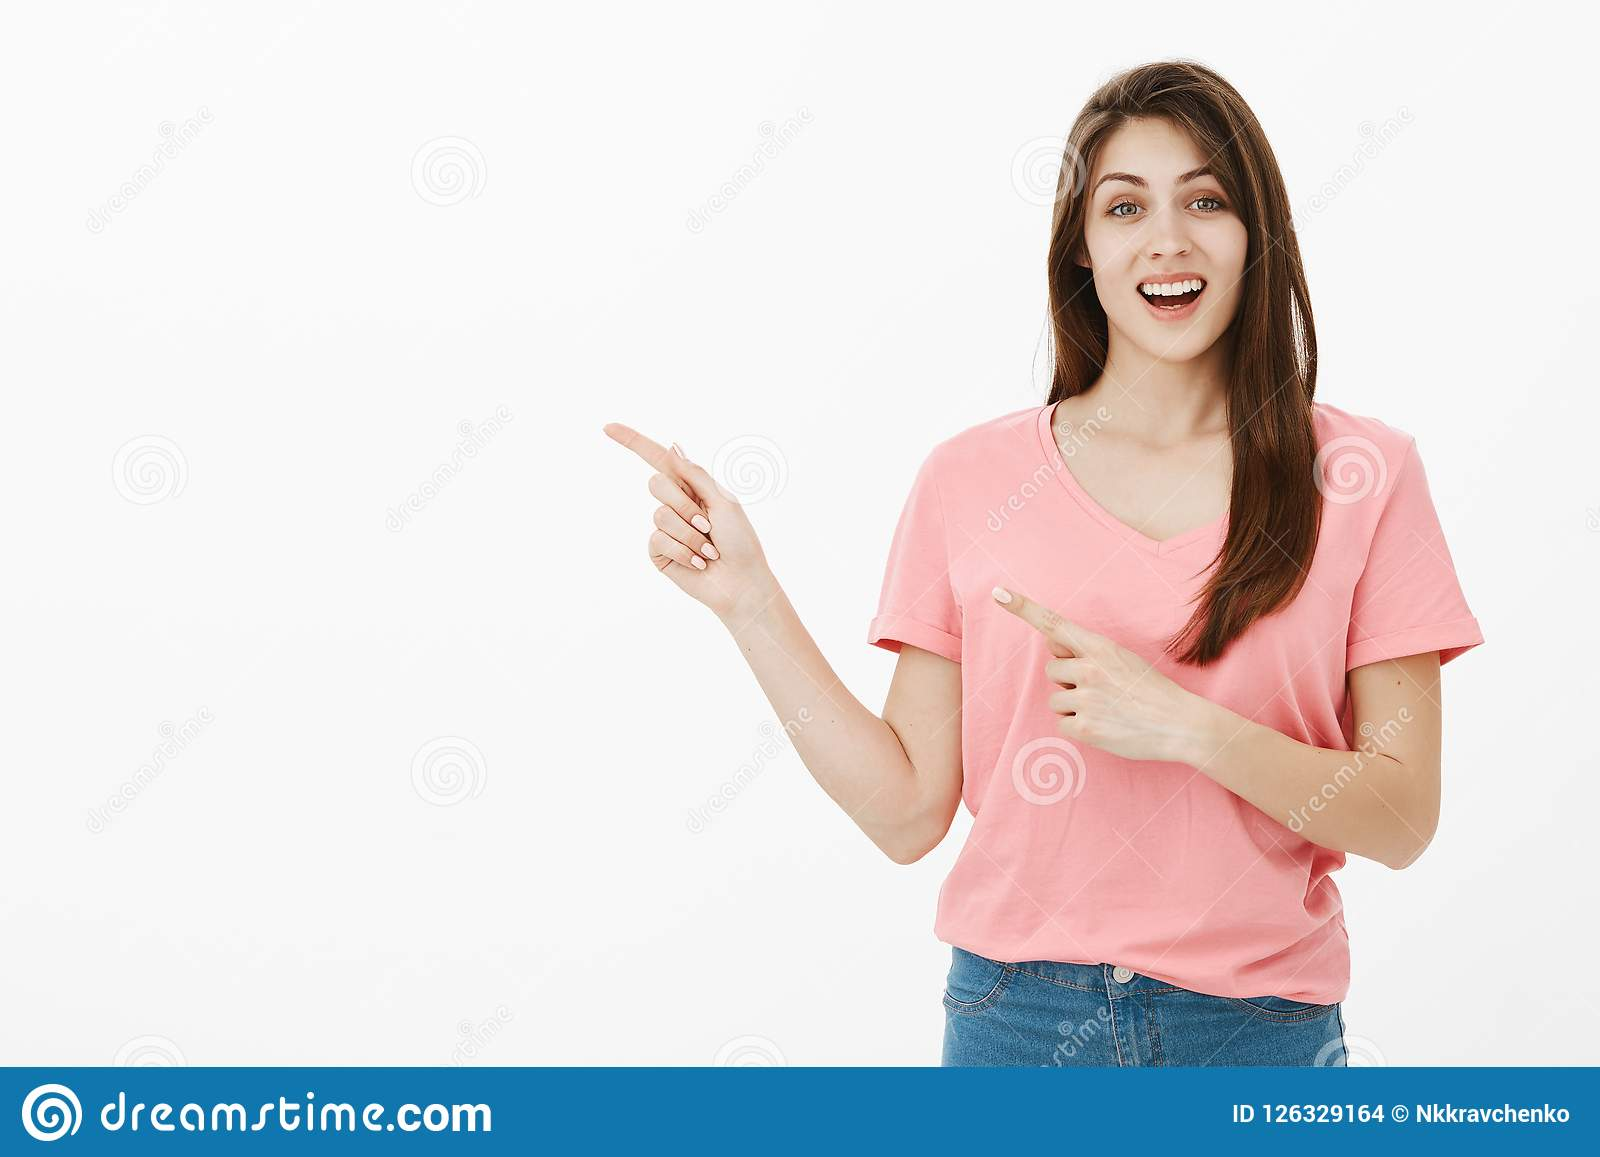 Portrait of pleased carefree happy girlfriend in casual clothes, smiling joyfully and pointing at upper left corner